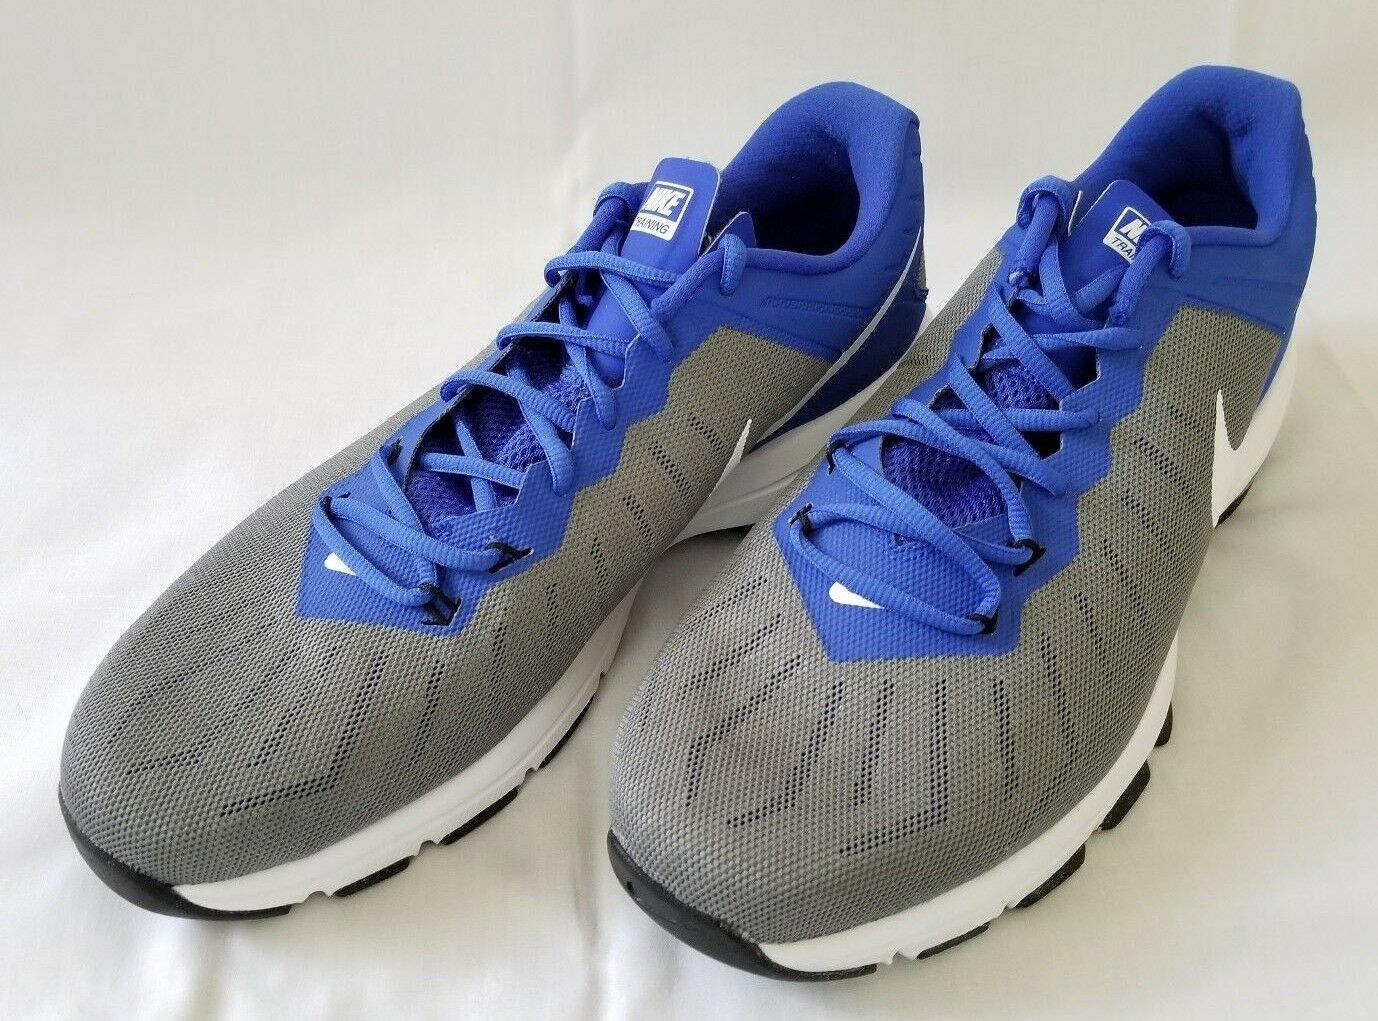 Mens Size Grey White Blue Nike Air Max Training Shoes 819004-004 preowned